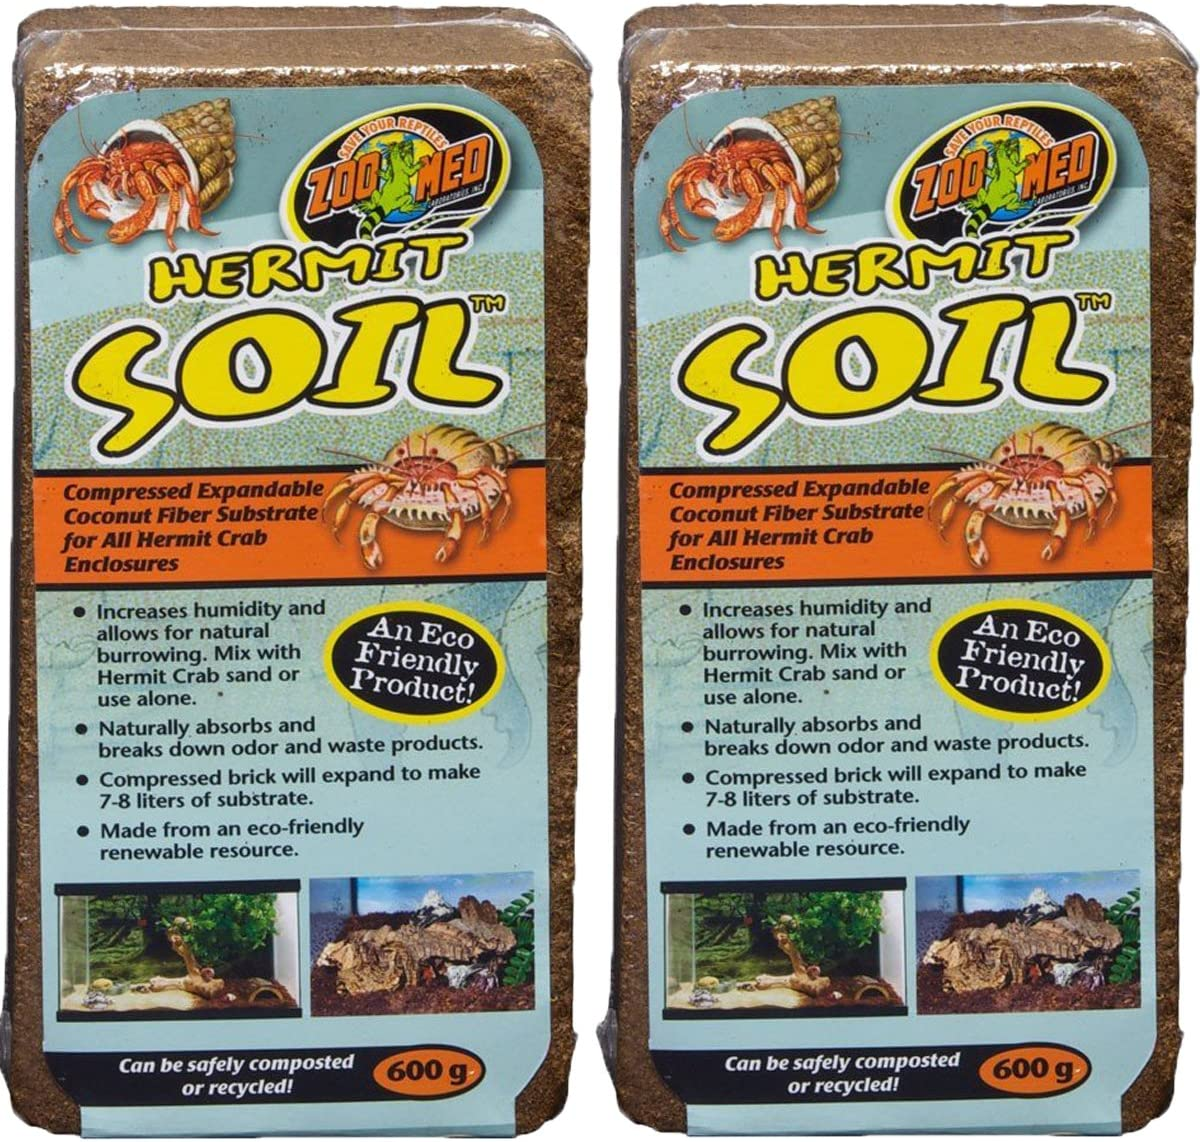 Zoo Med Hermit Soil Coconut Fiber Brick 600g (2 Pack)